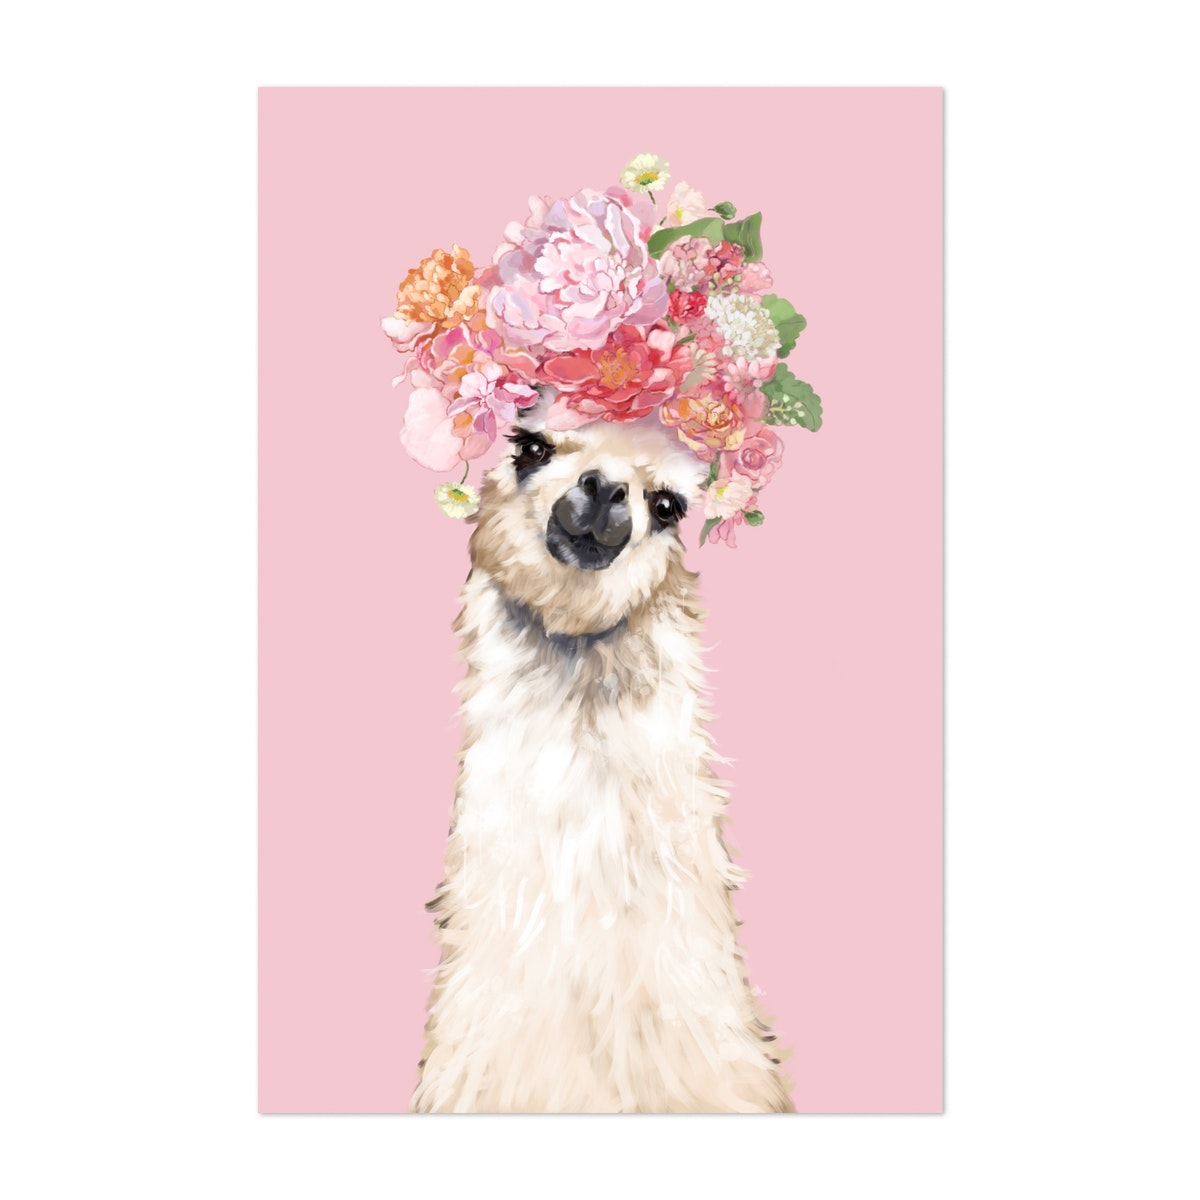 Llama with Flower Crown in Pink